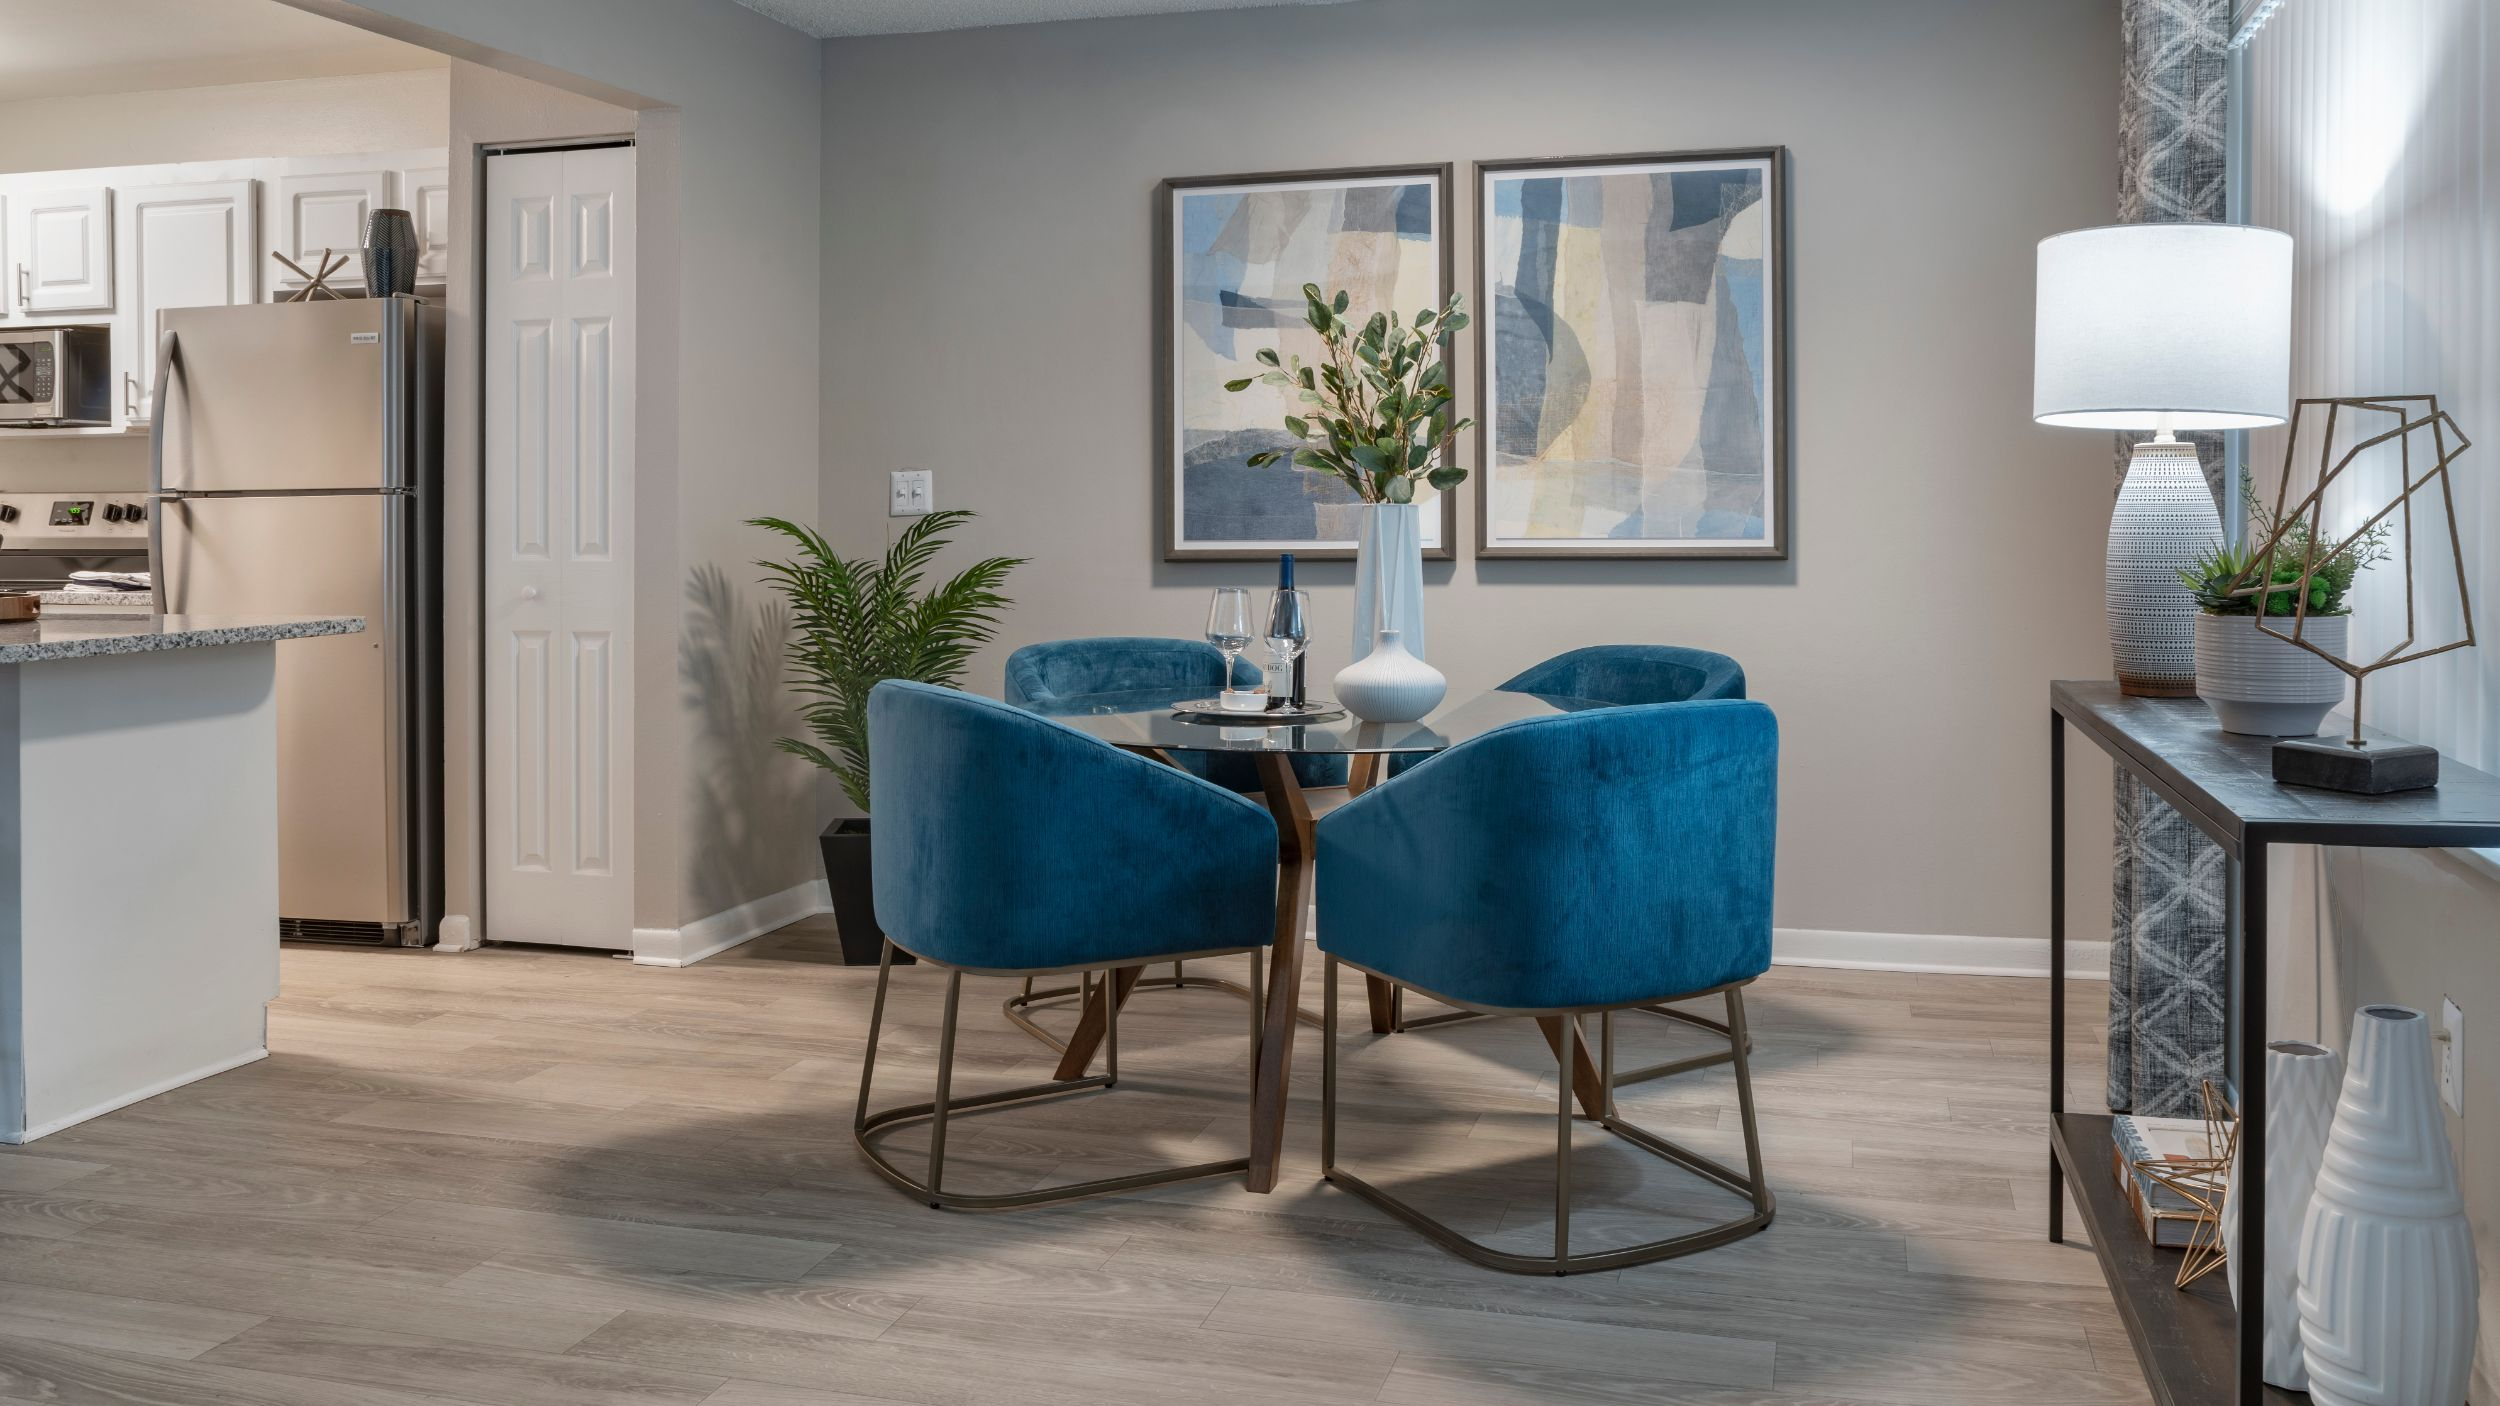 Apartment dining area with blue chairs and table